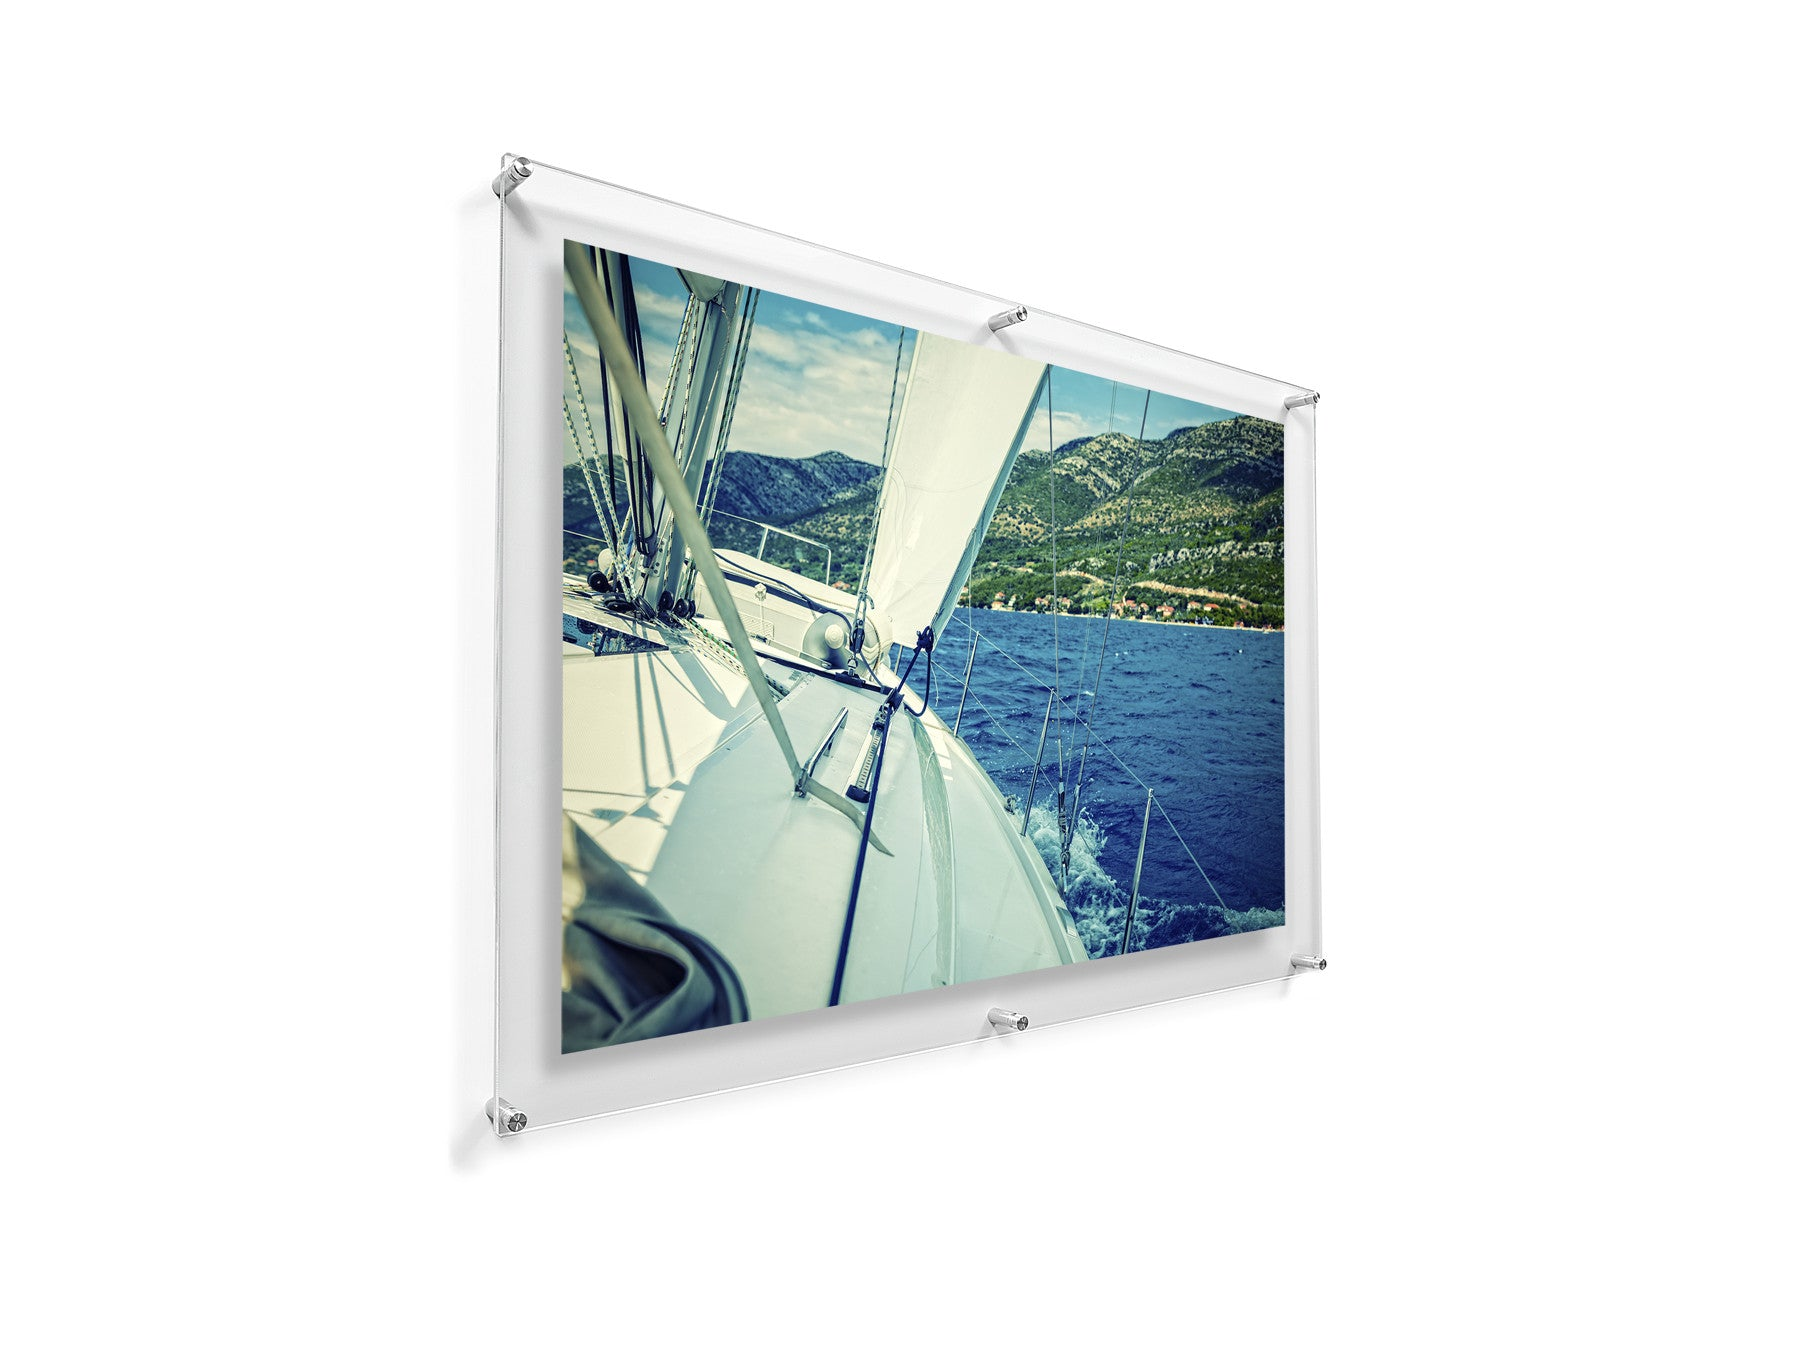 Large Double Panel Acrylic Wall Frame 28x40 - Case of 2 Frames ...